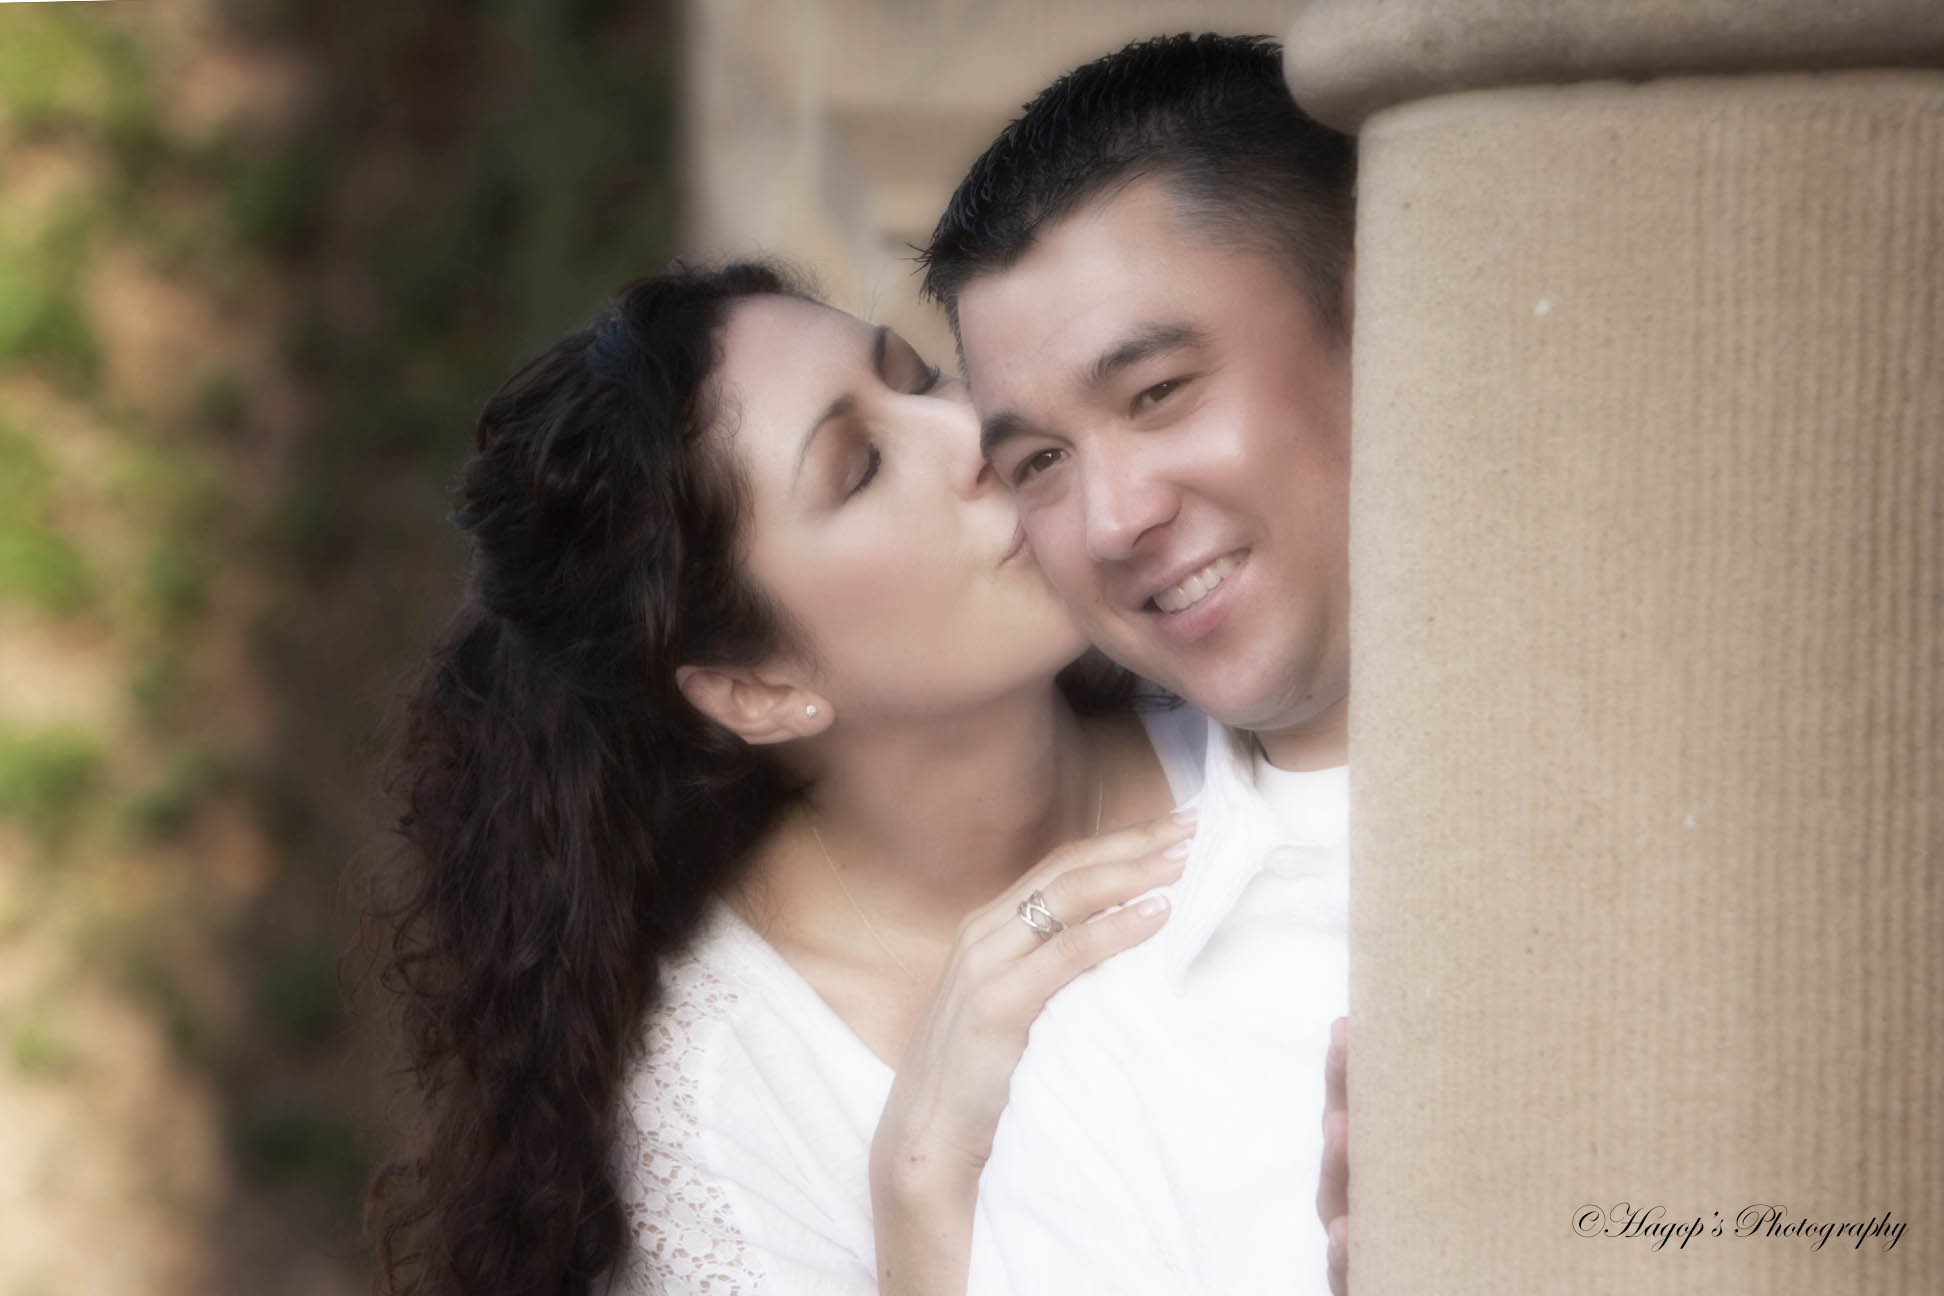 she gives her a kiss on his cheek at stanford university during their engagement session